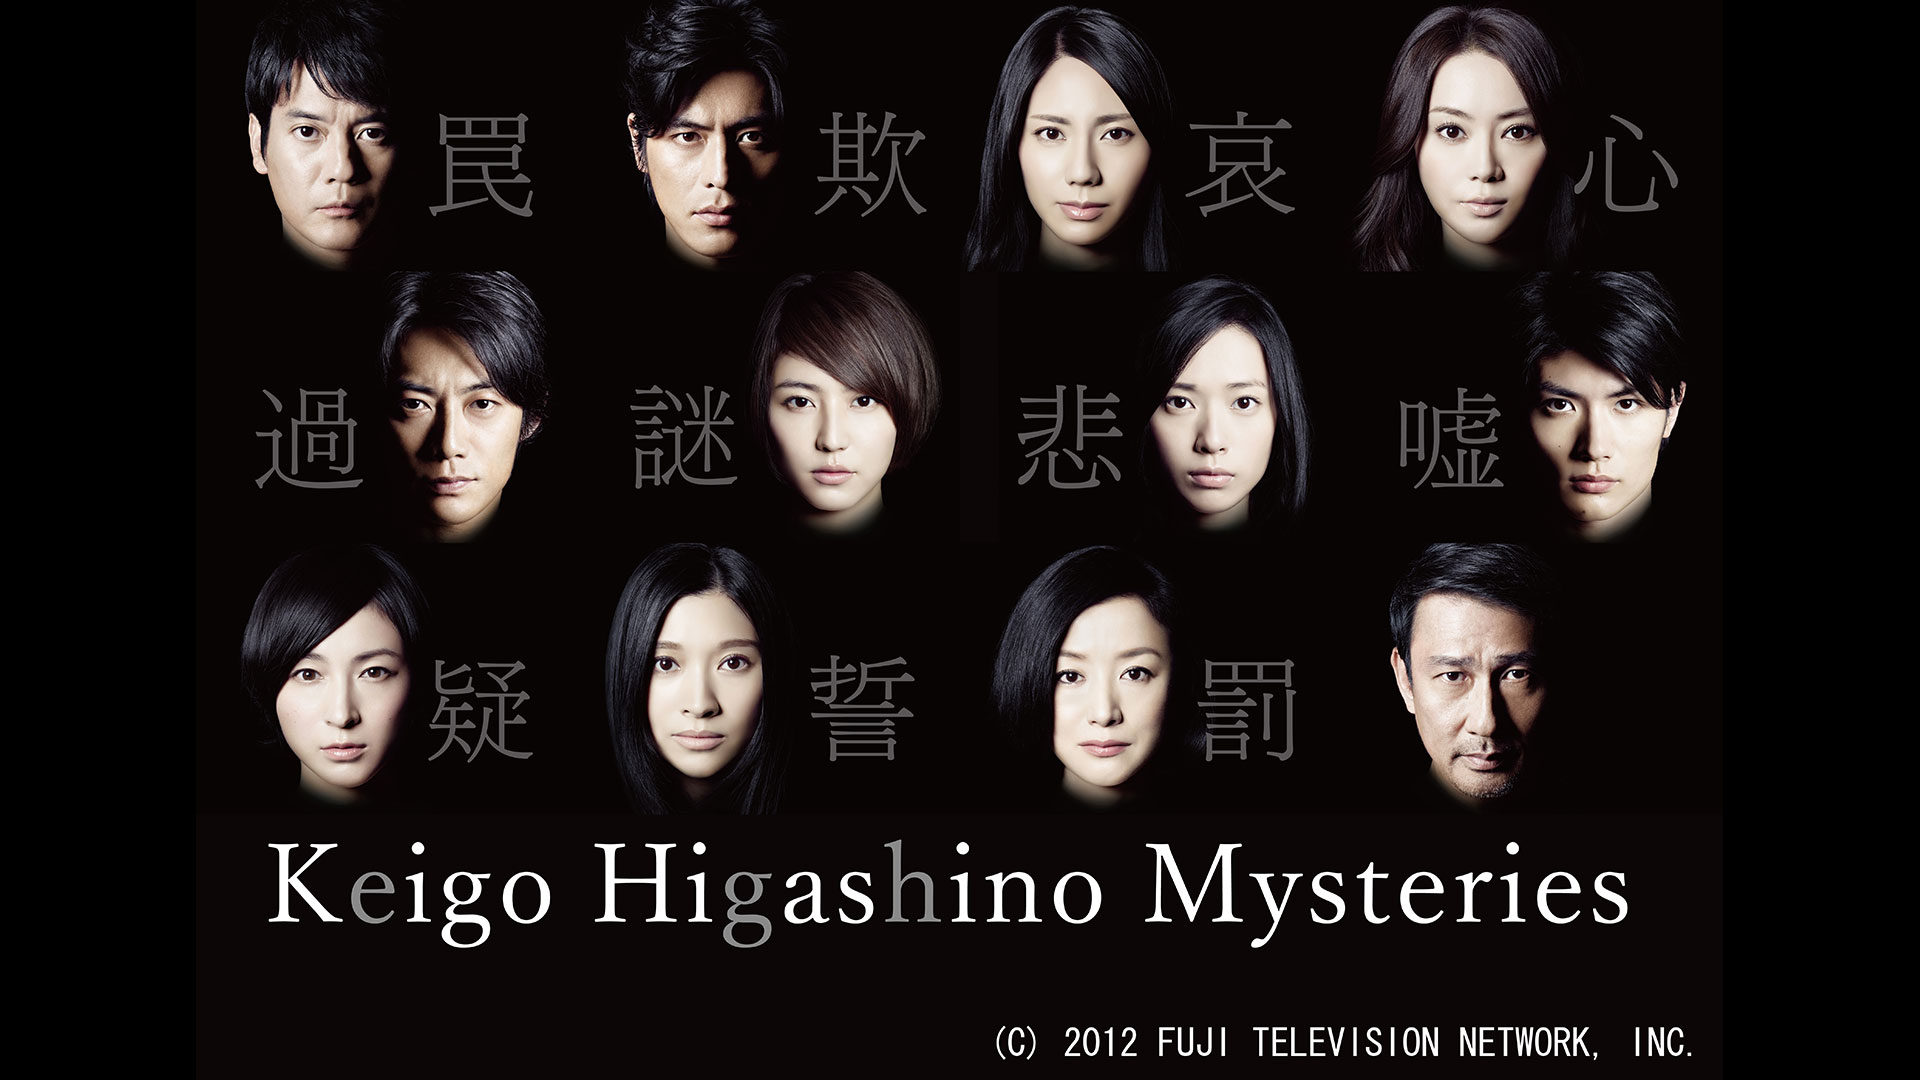 Keigo Higashino Mysteries 09 - The Wedding Announcement